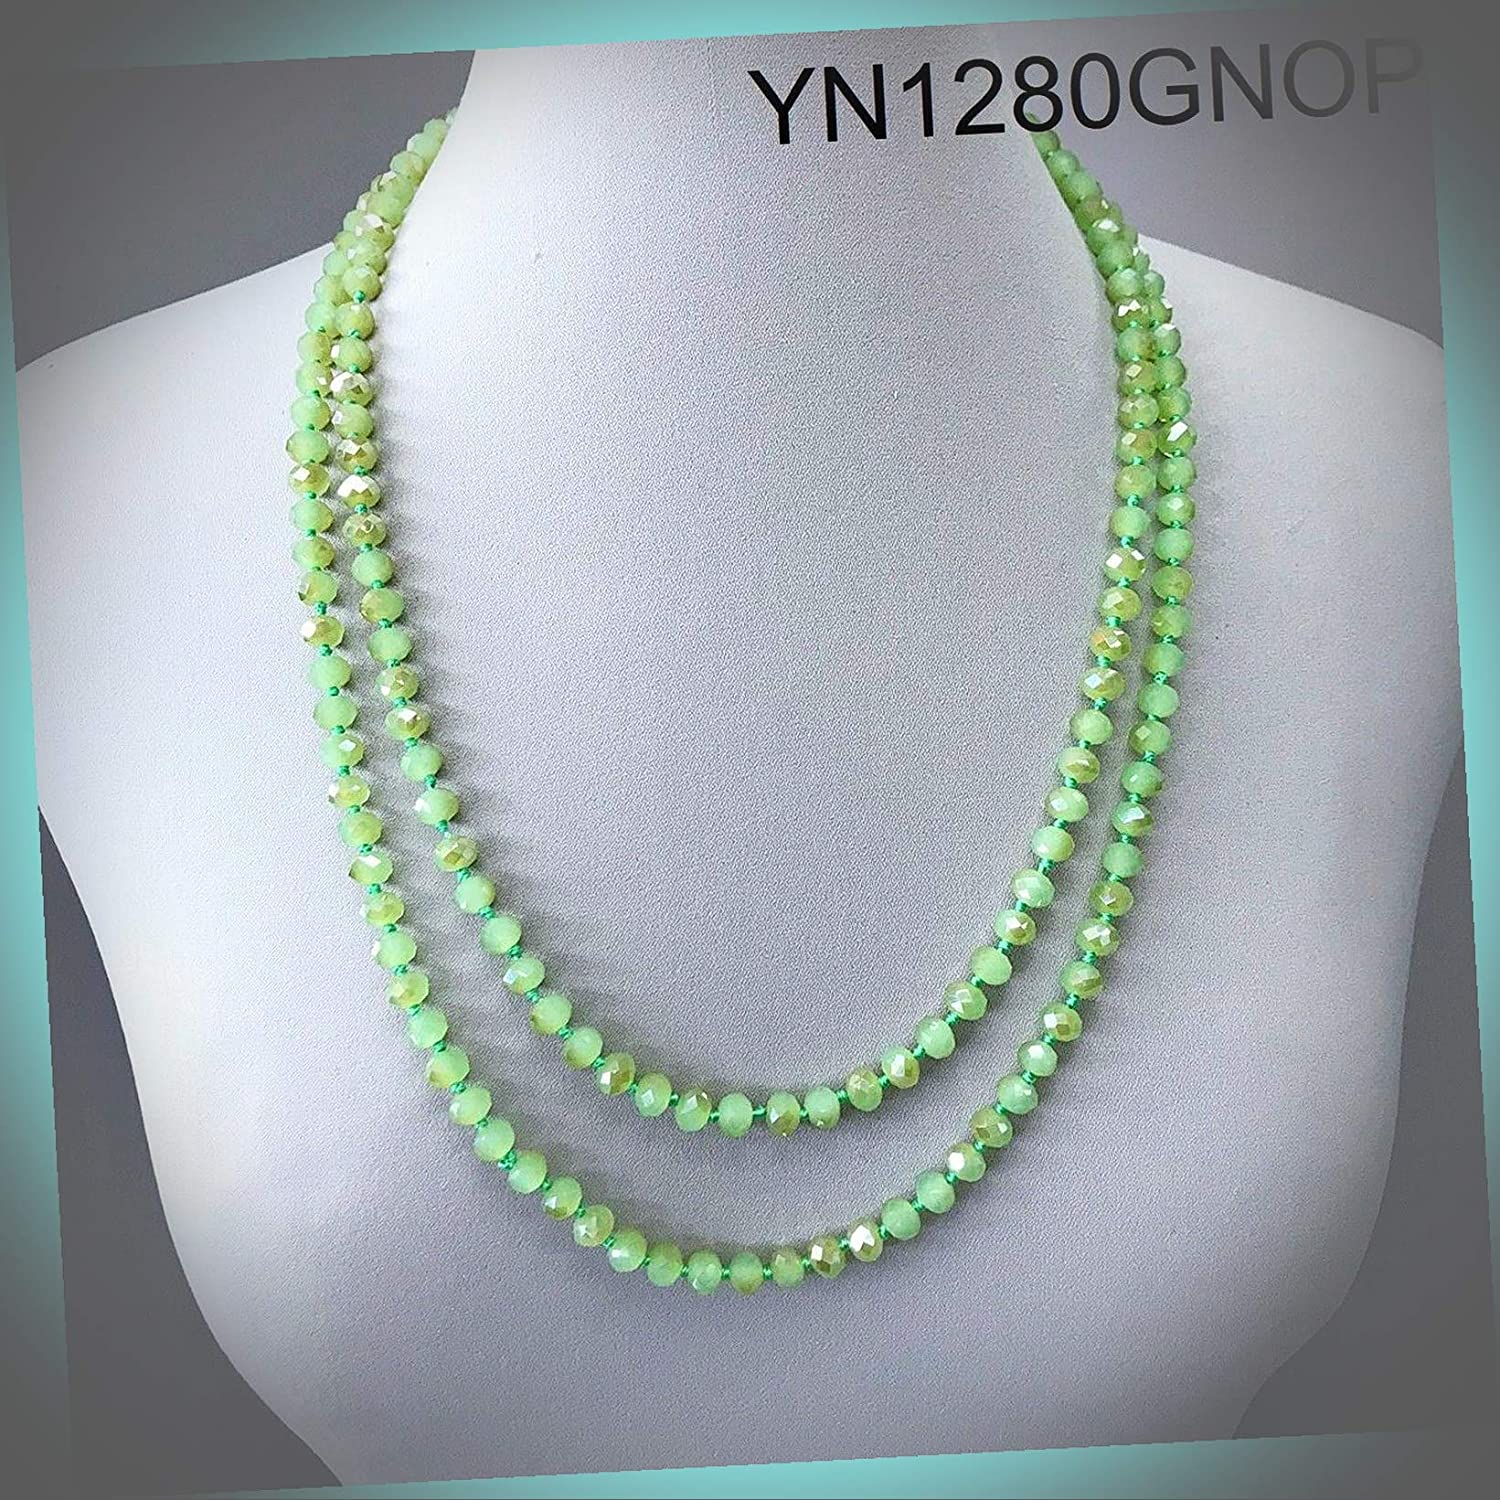 New Long Wrap Around Knotted Green Beaded Style Statement Wonderful Necklace ALI-N1624E Gift for Women Girls Charm Necklace by InnaBest